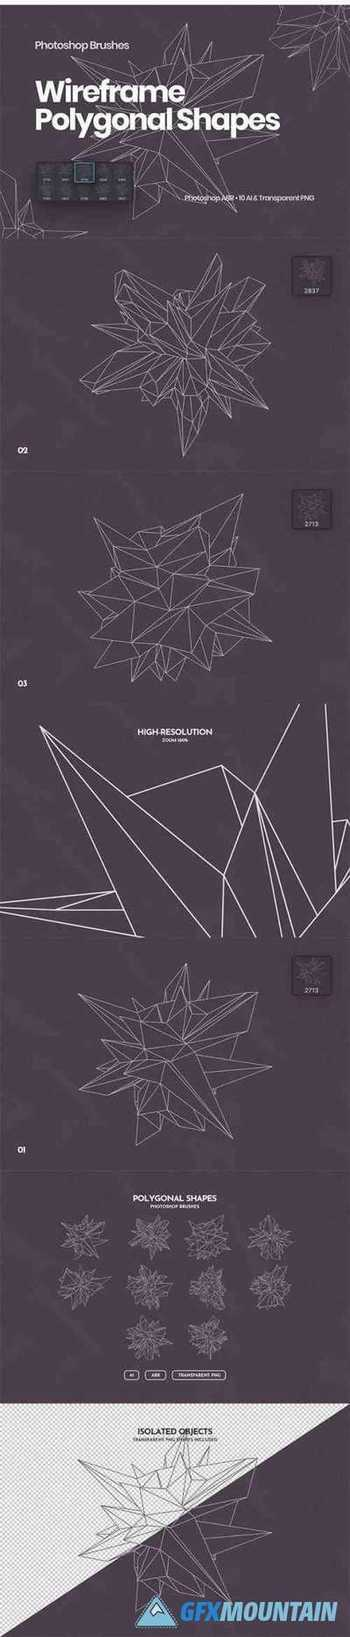 Wireframe Polygonal Shapes Photoshop Brushes